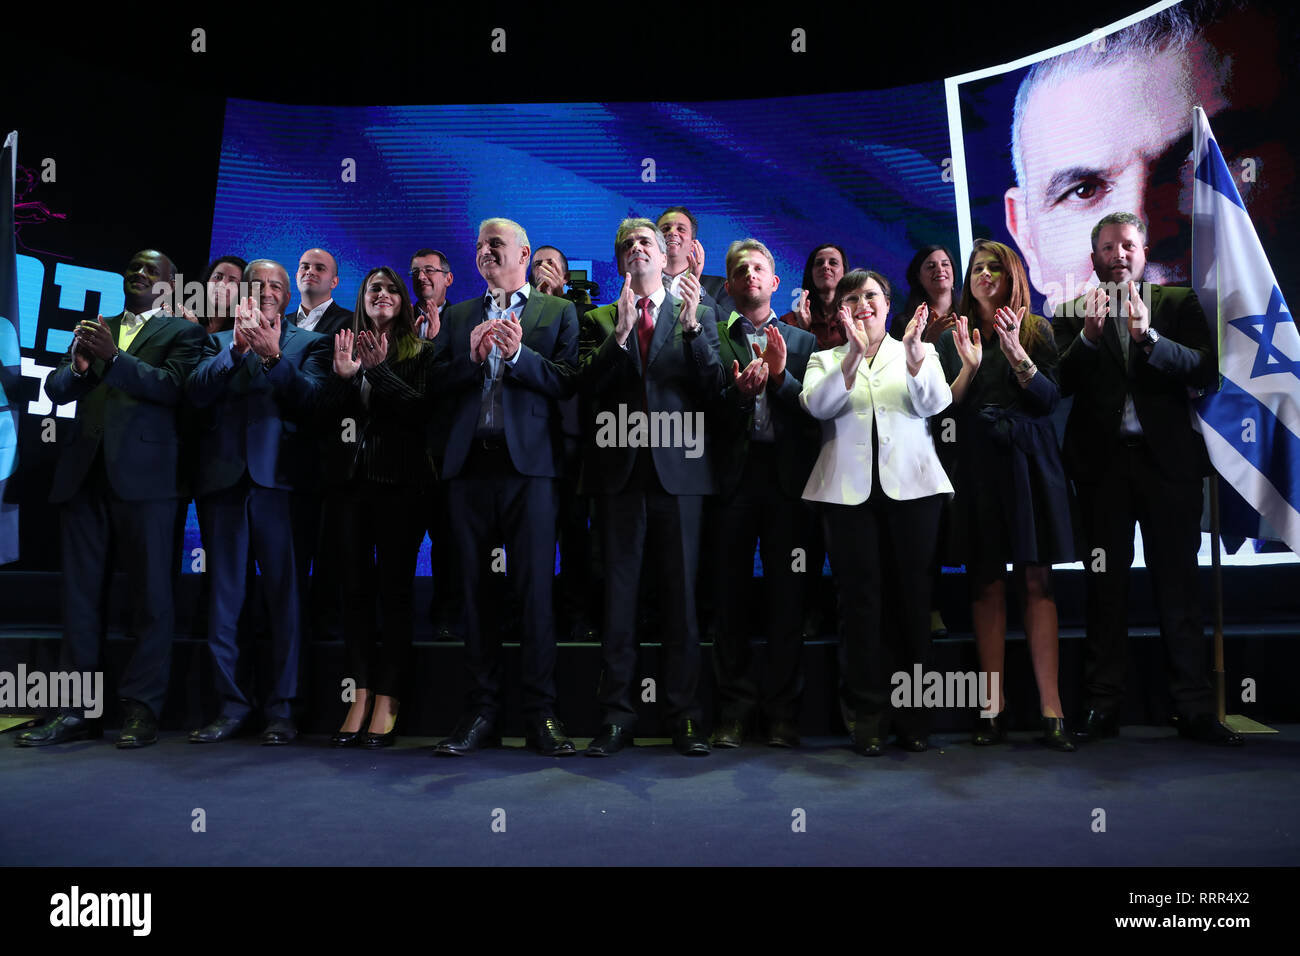 Rishon Lezion, Israel. 26th Feb, 2019. Israeli Finance Minister and head of the Kulanu party Moshe Kahlon attends a conference of the Kulanu party, presenting the list of candidates, in Rishon Lezion, Israel, on Feb. 26, 2019. Credit: JINI/Gideon Markowicz/Xinhua/Alamy Live News - Stock Image